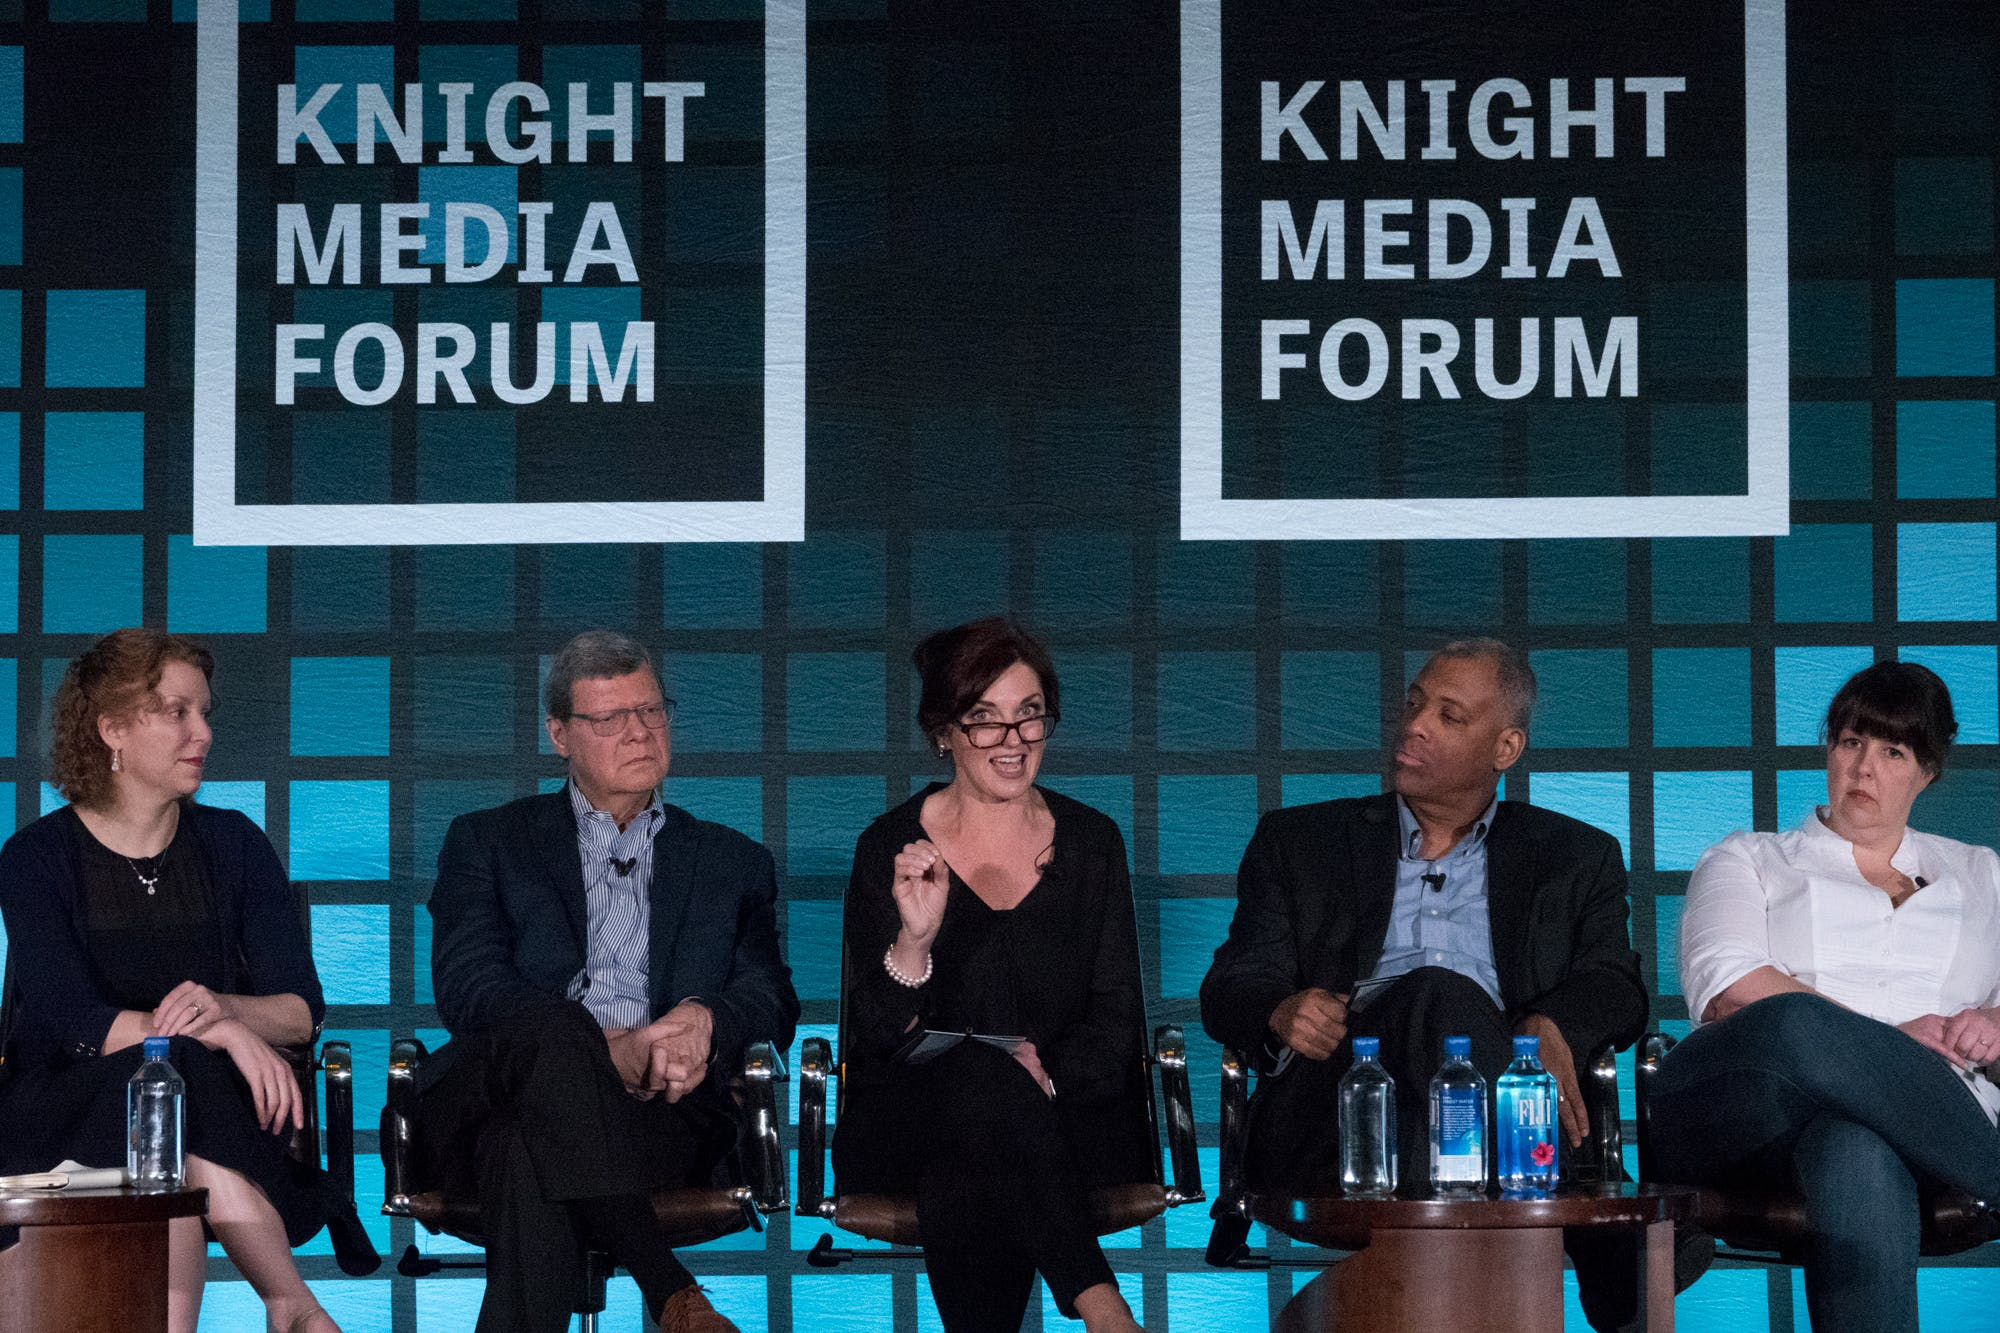 <p>Nuala O&rsquo;Connor, president and CEO of the Center for Democracy and Technology makes a point during a panel discussion with the Knight Commission on Trust, Media and Democracy at the Knight Media Forum 2018. Photo: Angel Valentin</p>